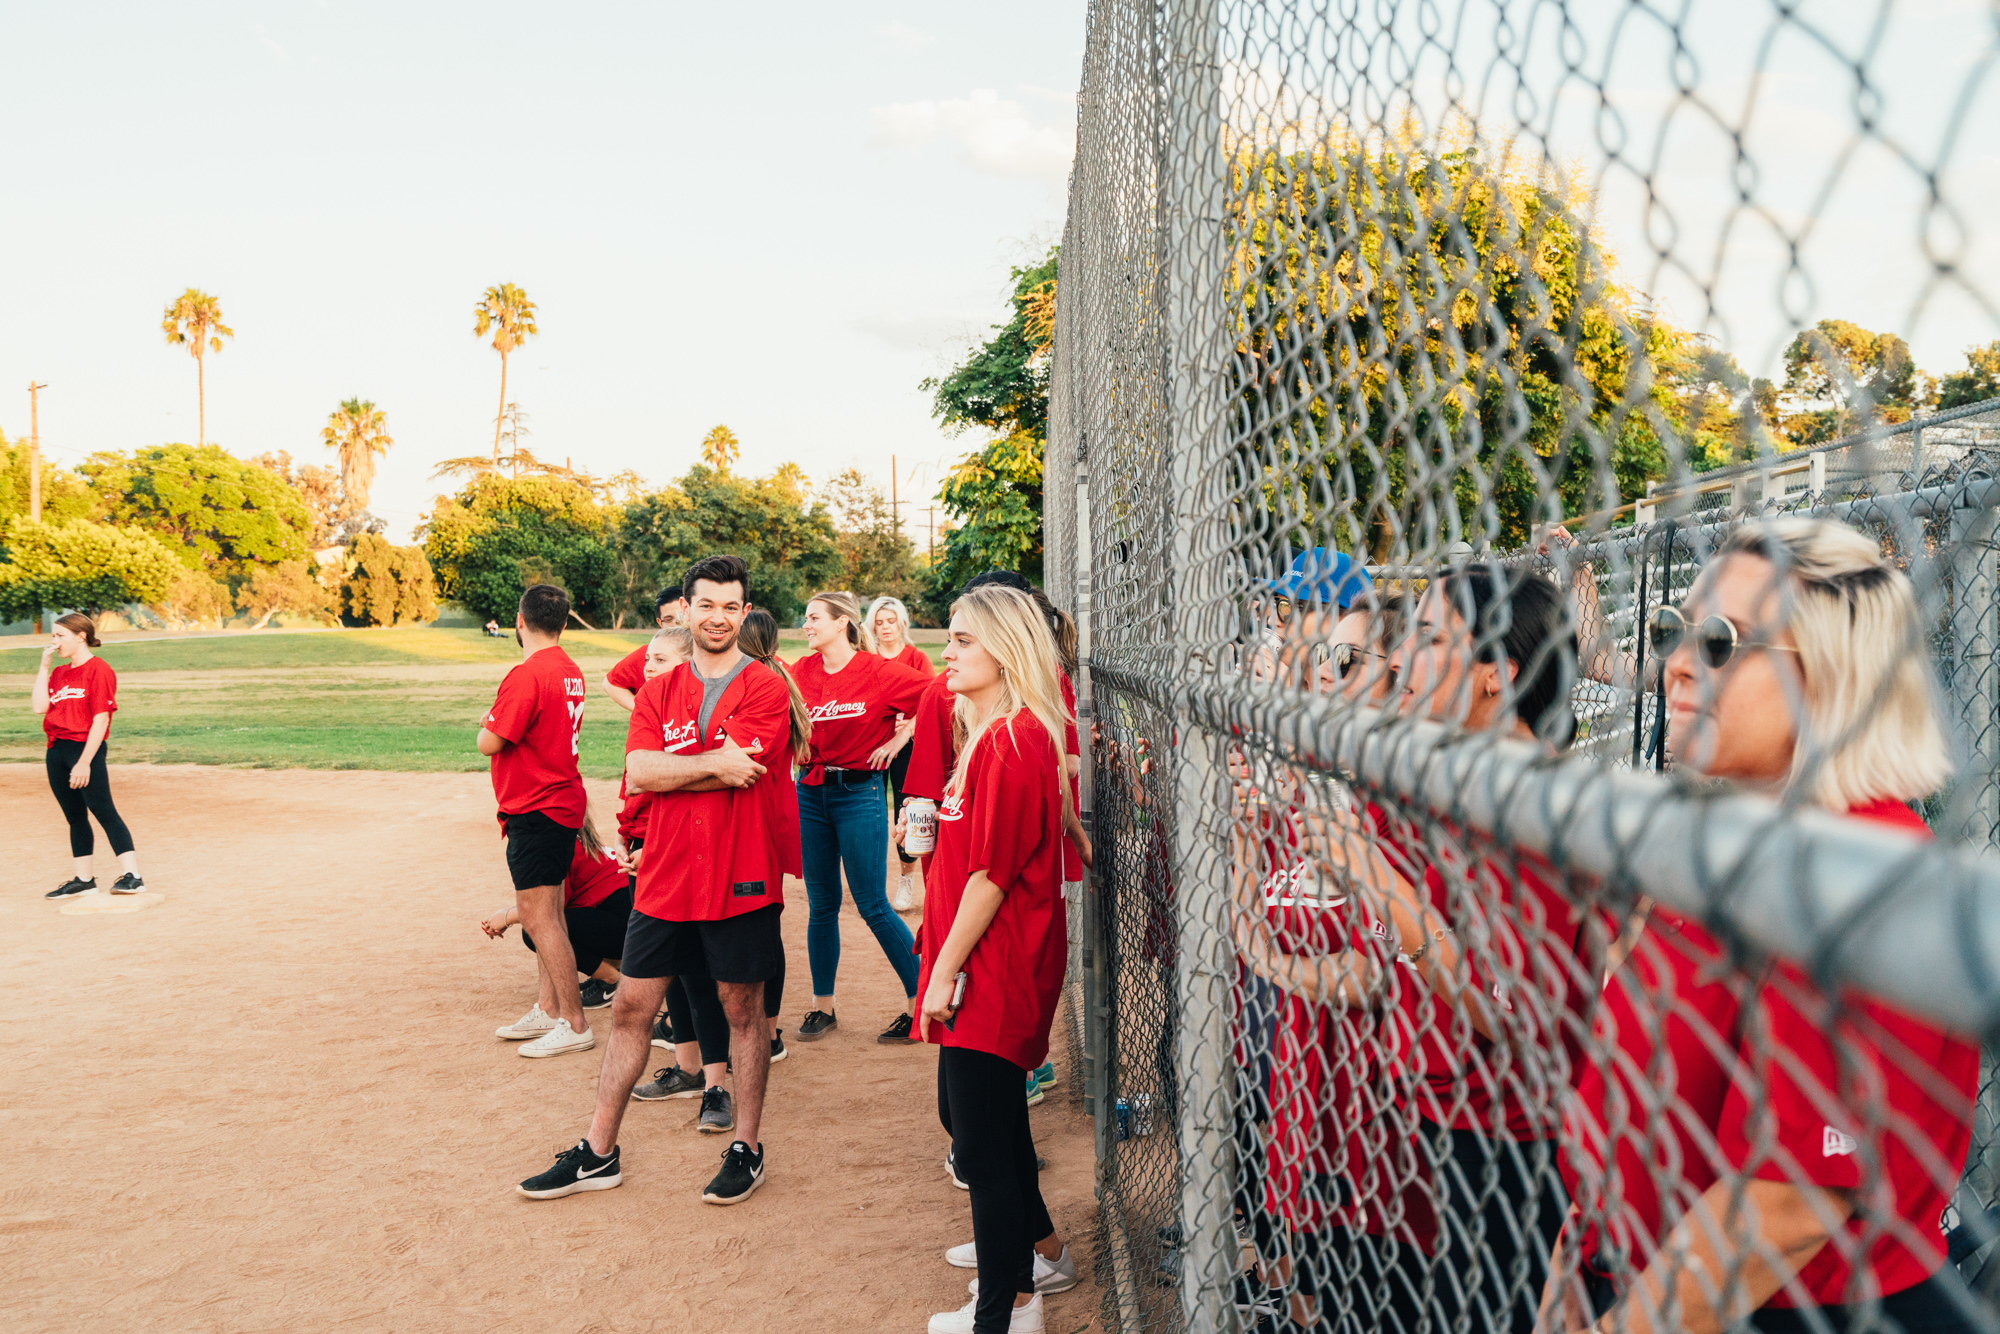 The Agency Kickball 2019